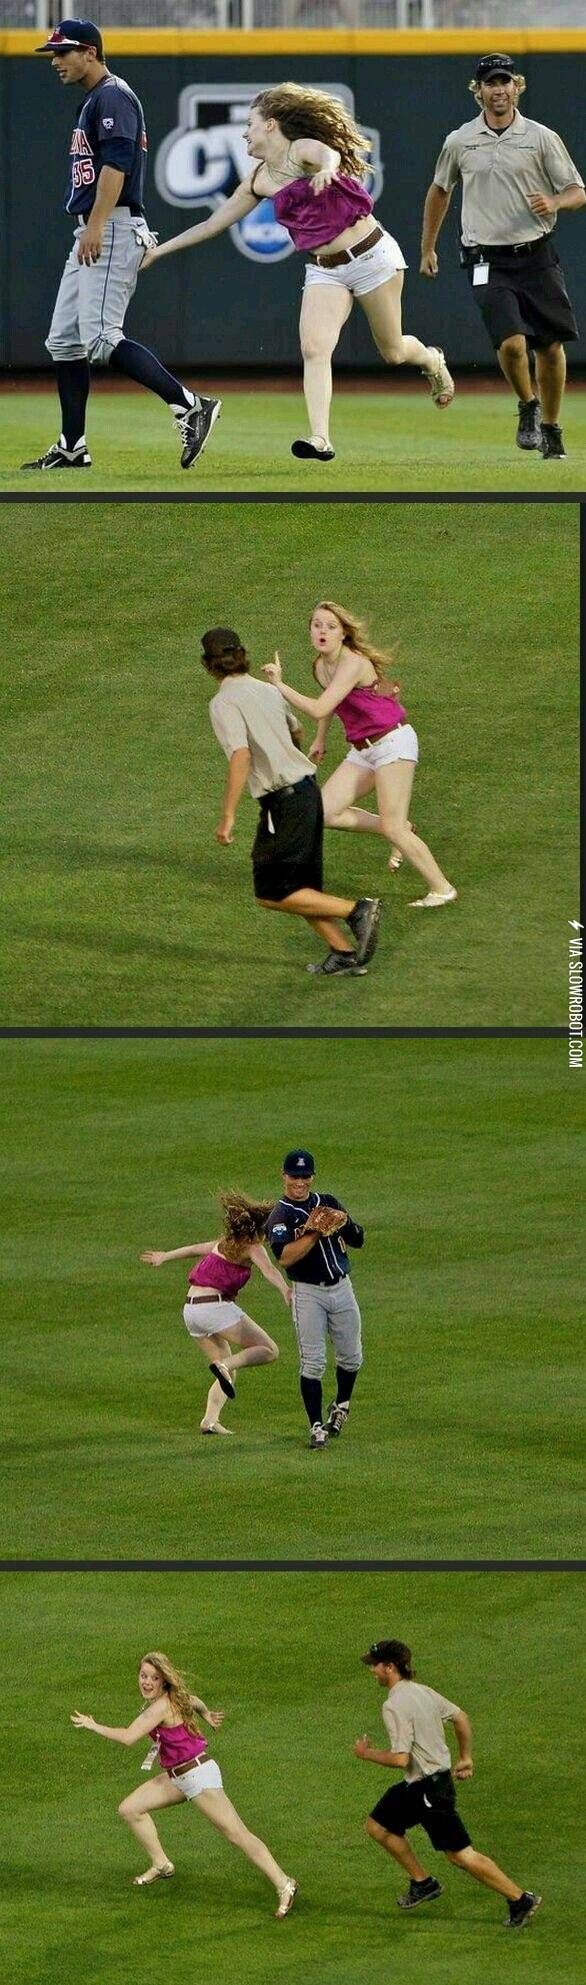 So this girl ran on the field to touch players' butts. How much money you think they put down for her to do that??